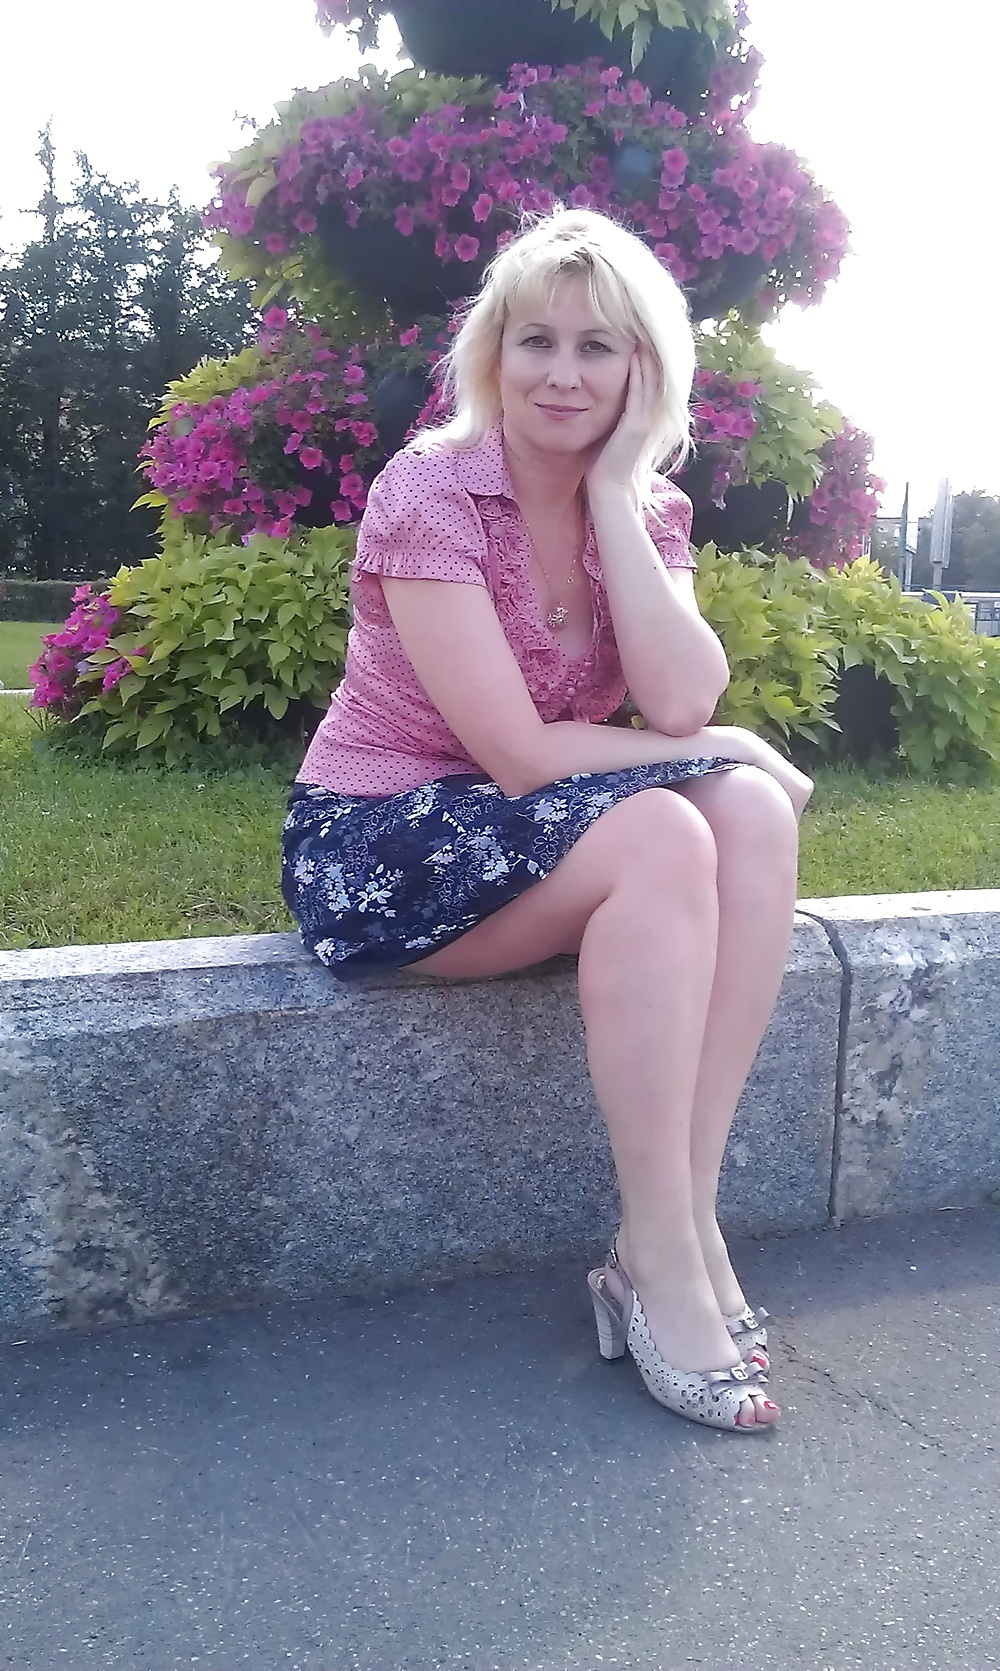 rencontre homme femme badoo